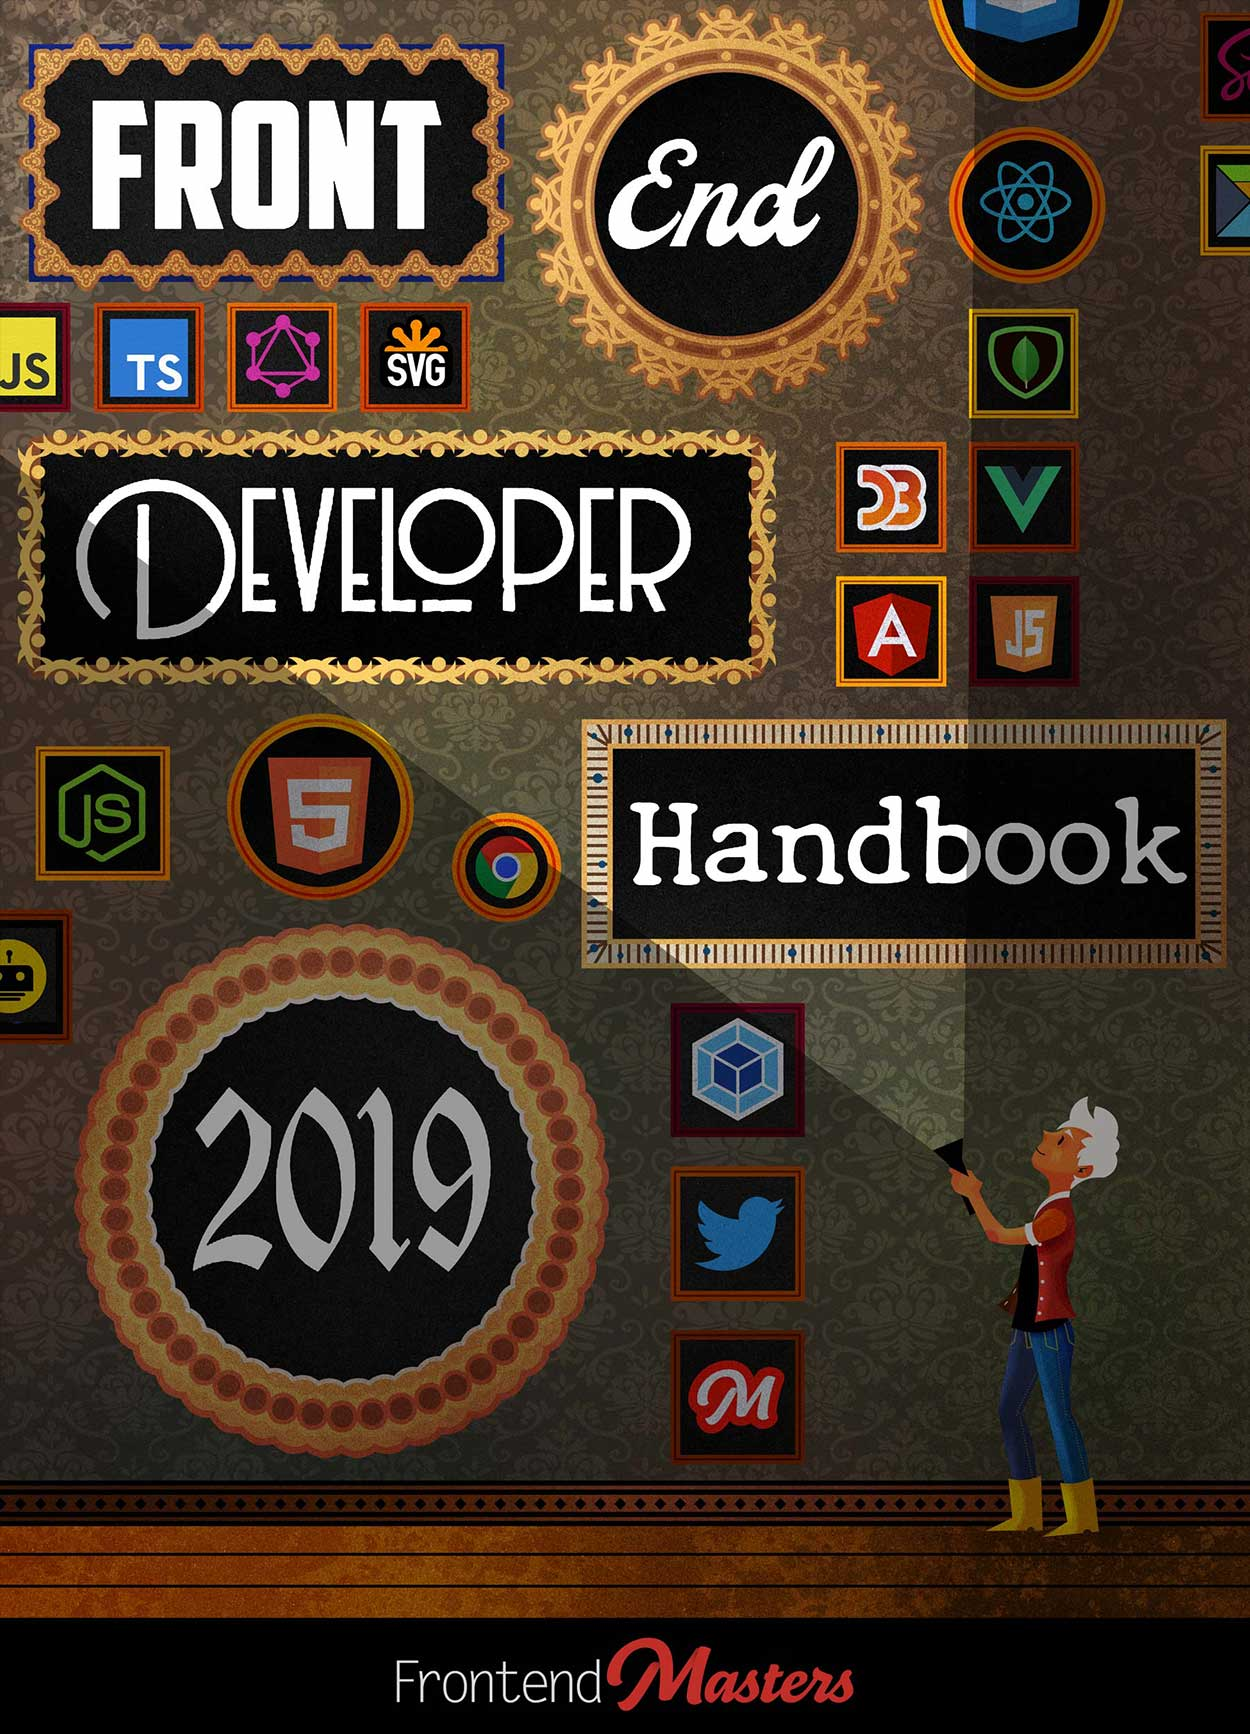 Front-end Developer Handbook 2019 - Learn the entire